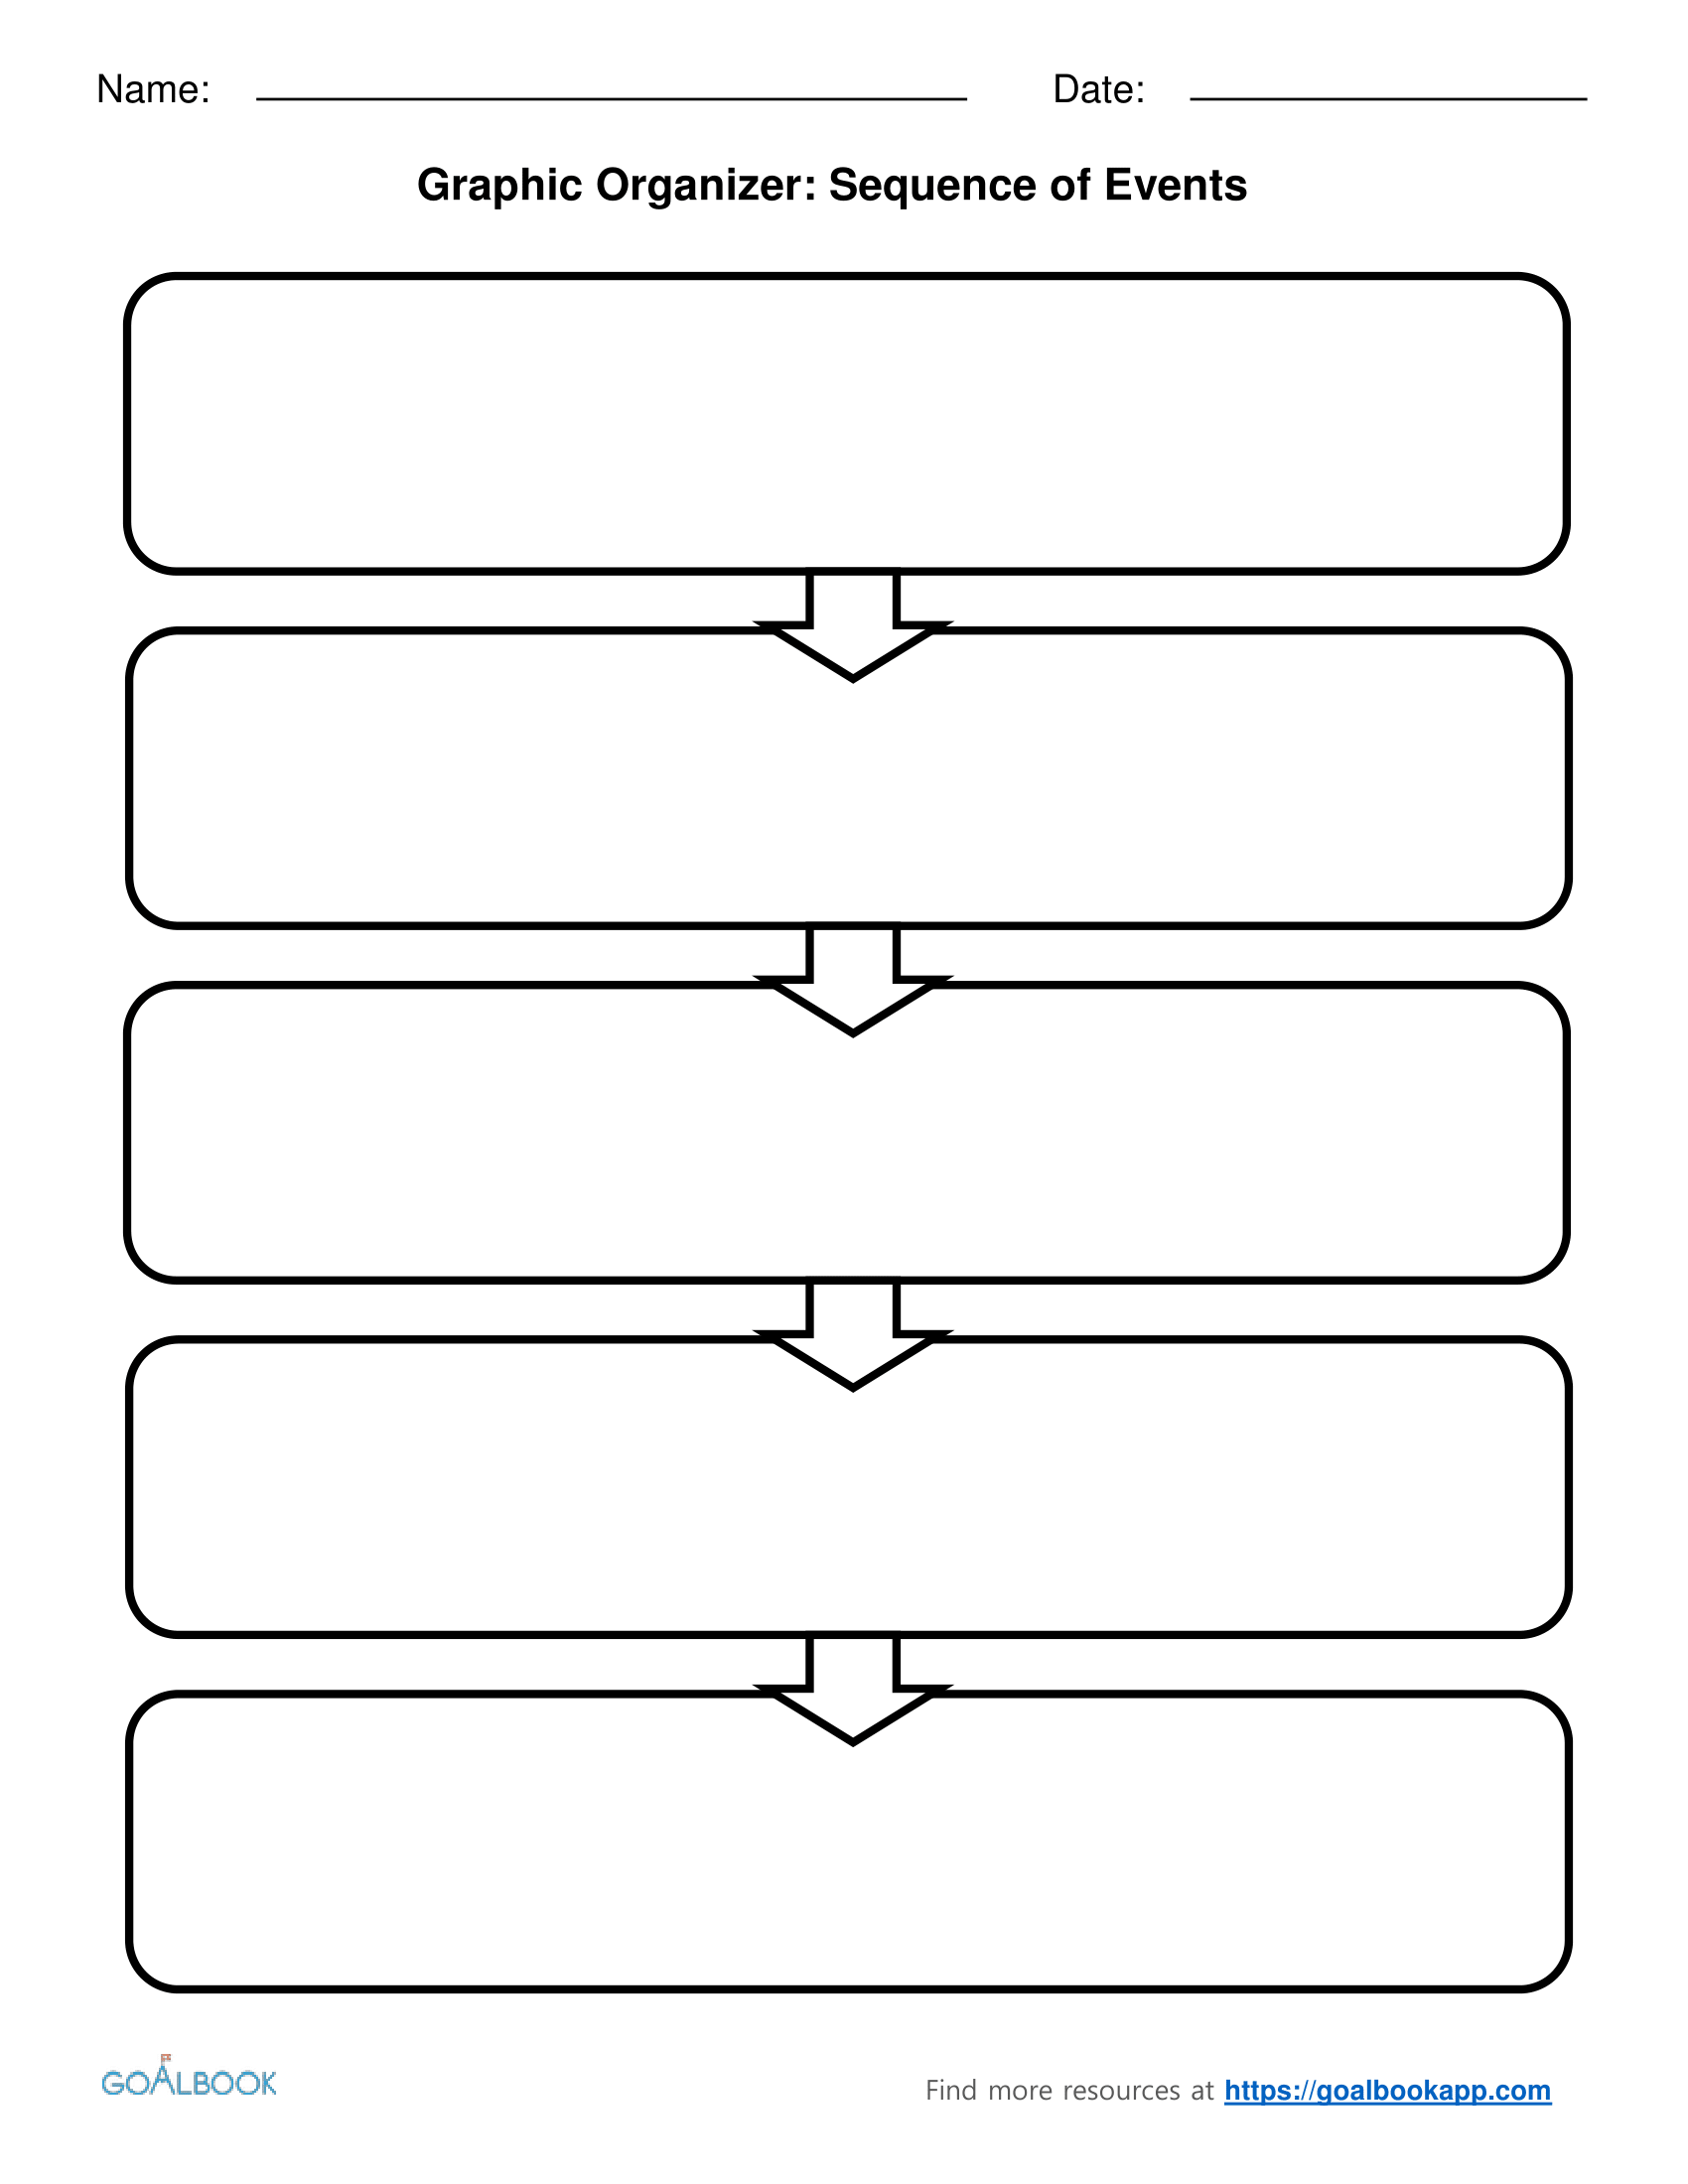 small resolution of 05_Chain_of_Events_Sequence_Organizer_Blank-1.png (1700×2200)   Graphic  organizer template